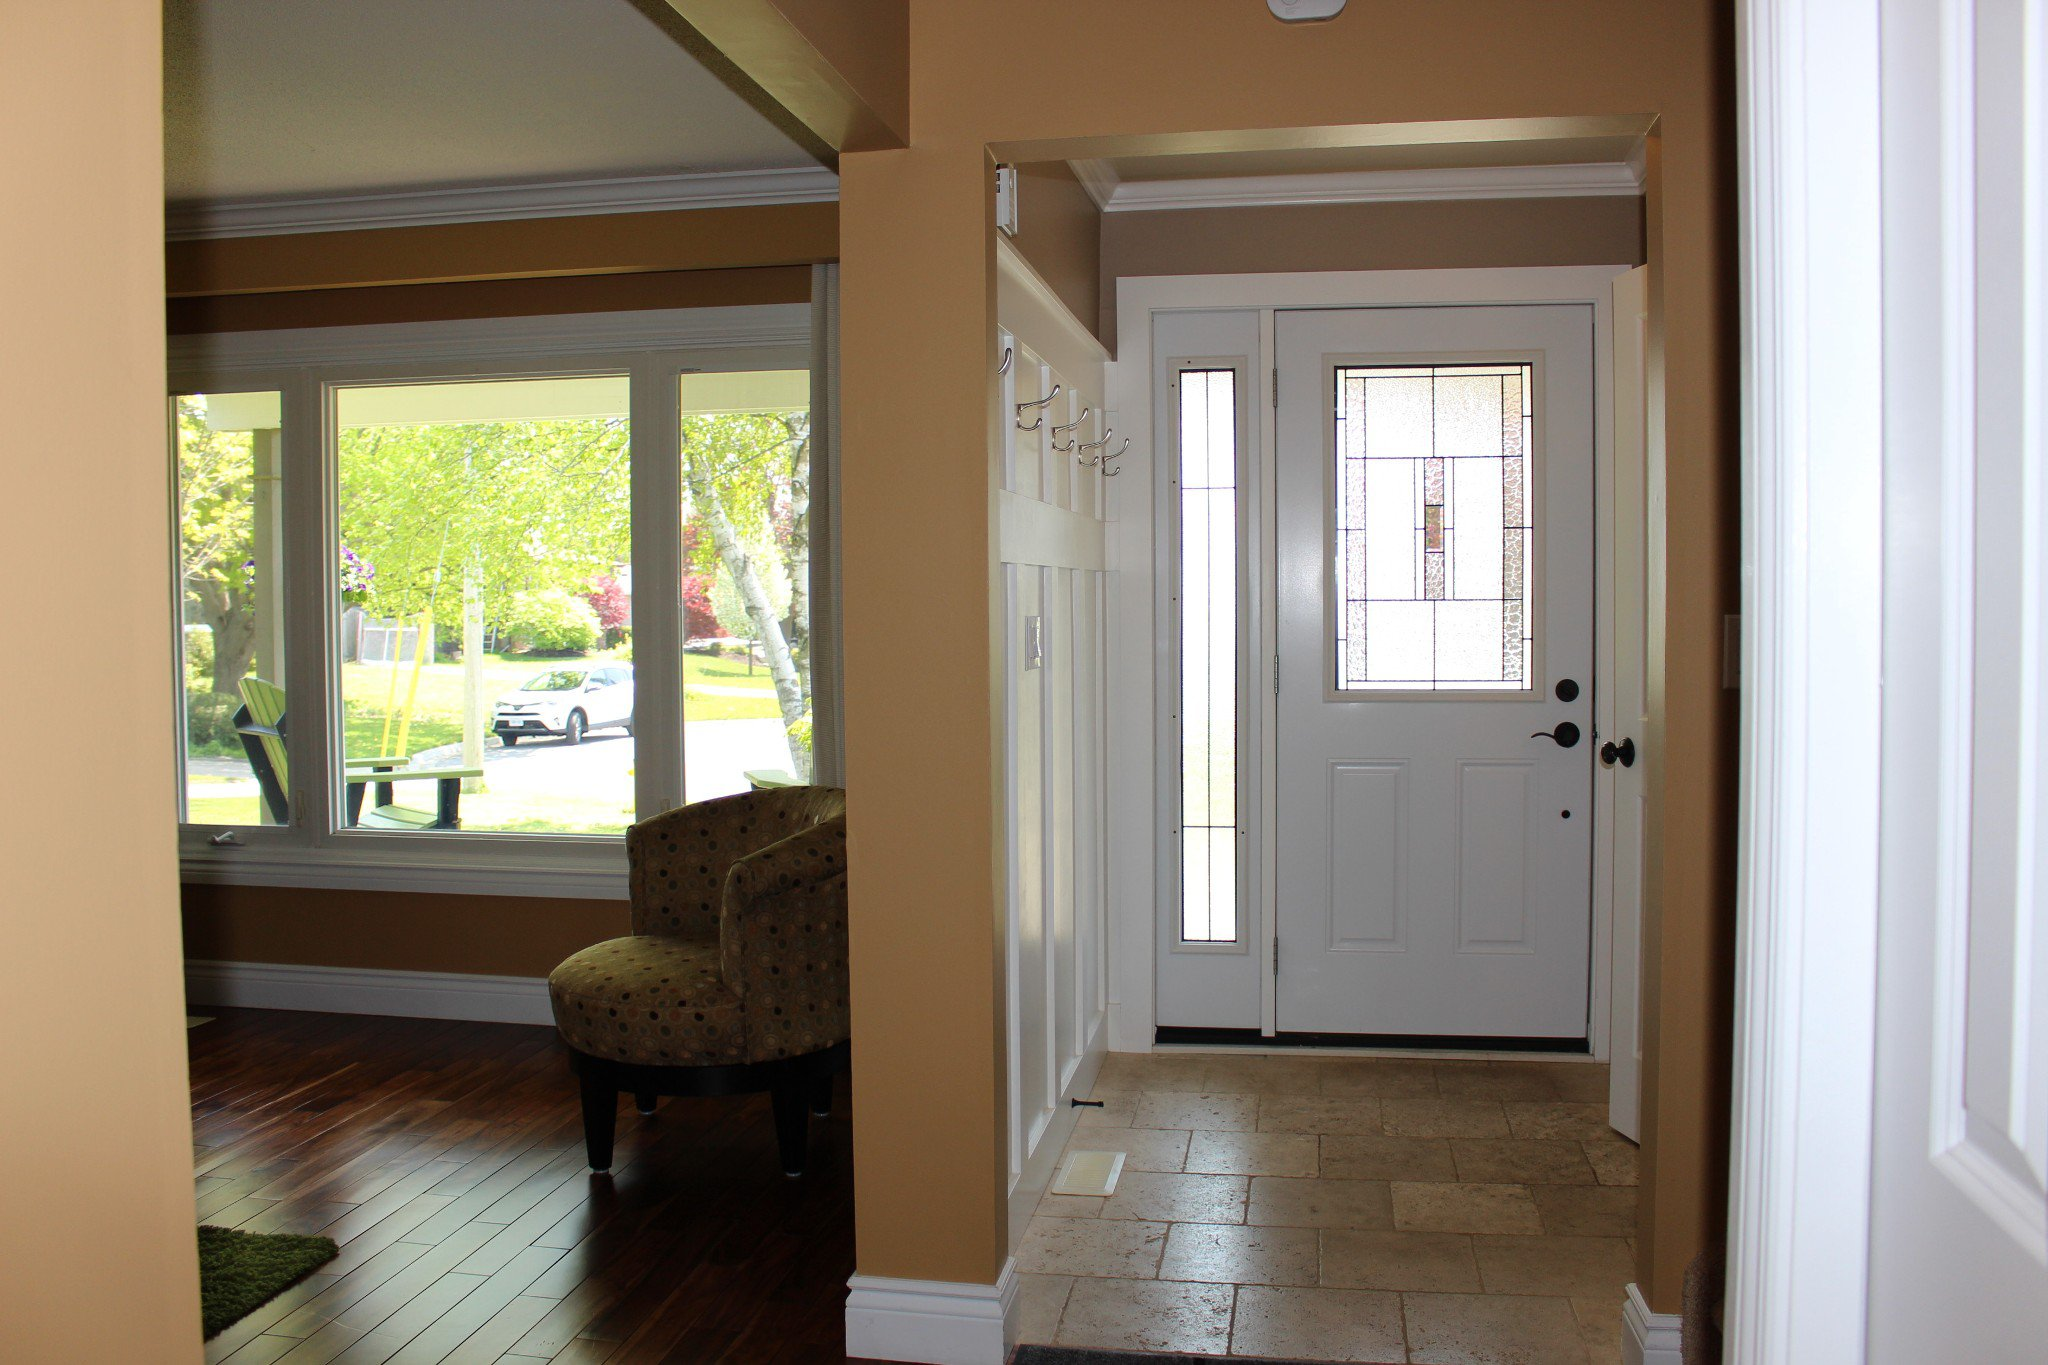 Photo 6: Photos: 751 Spragge Crescent in Cobourg: Residential Detached for sale : MLS®# 1291056